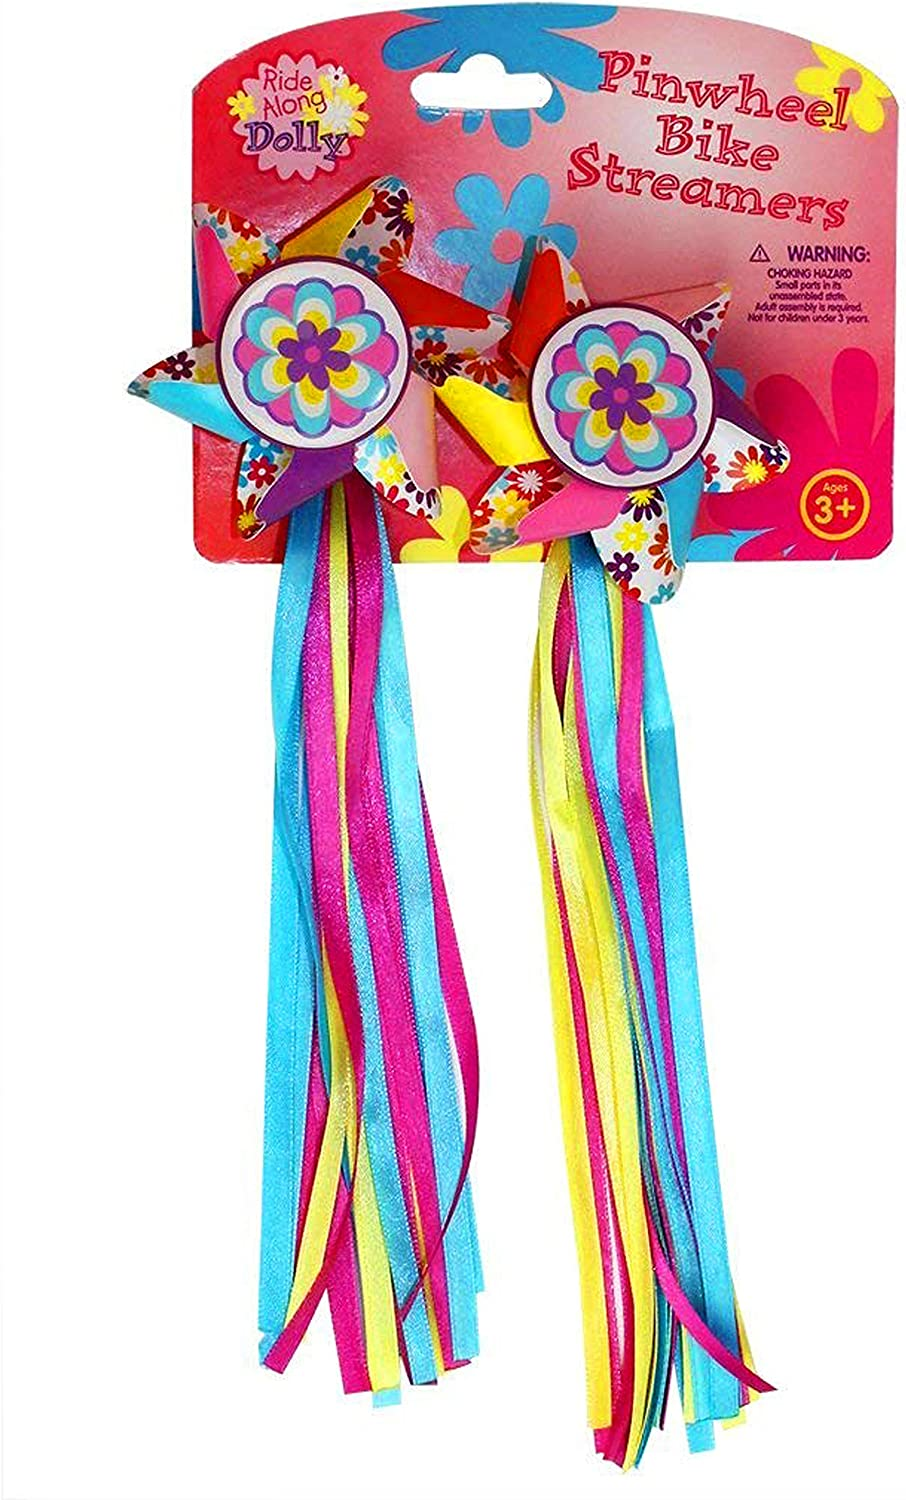 Ride Along Dolly Bike Handlebar Streamers - Kid's Bicycle Pinwheel Streamers - Easy Attachment to Cycle's Handlebars